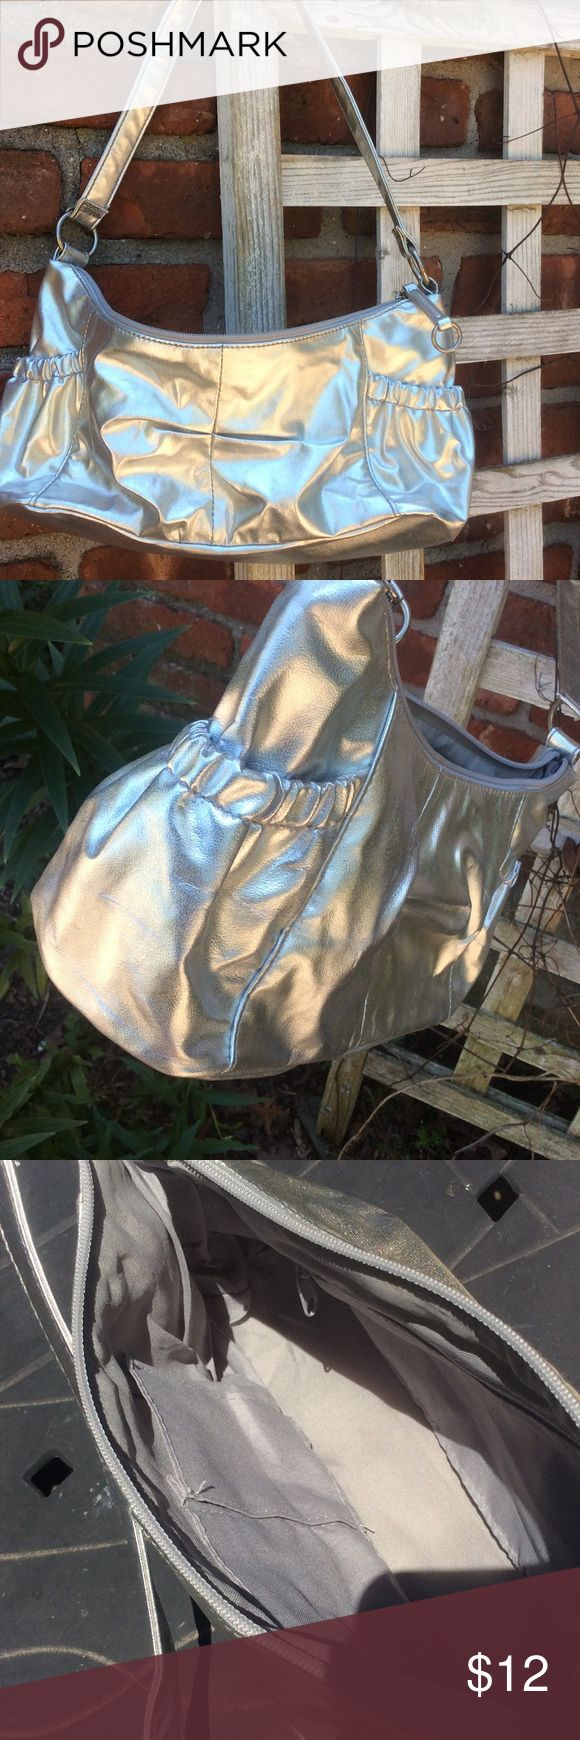 Silver purse / pocketbook NWOT Silver purse / pocketbook. Hasn't been used, but has been stored. Could not find any visible defects. Side pockets for storage. Bags Shoulder Bags